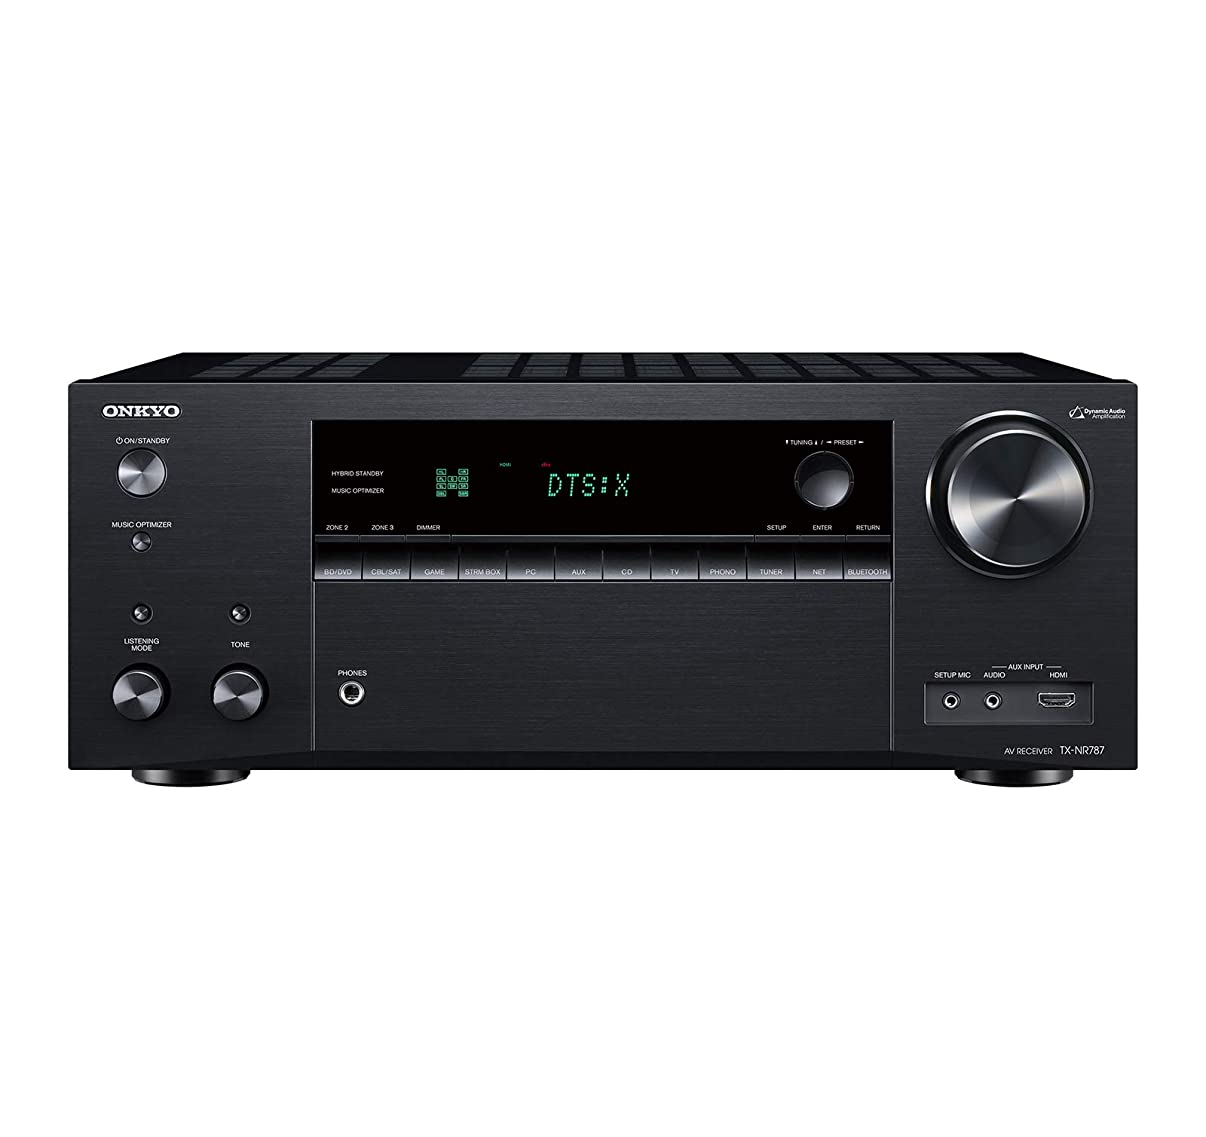 Onkyo THX Audio & Video Component Receiver - Black TX-NR787 (Renewed)